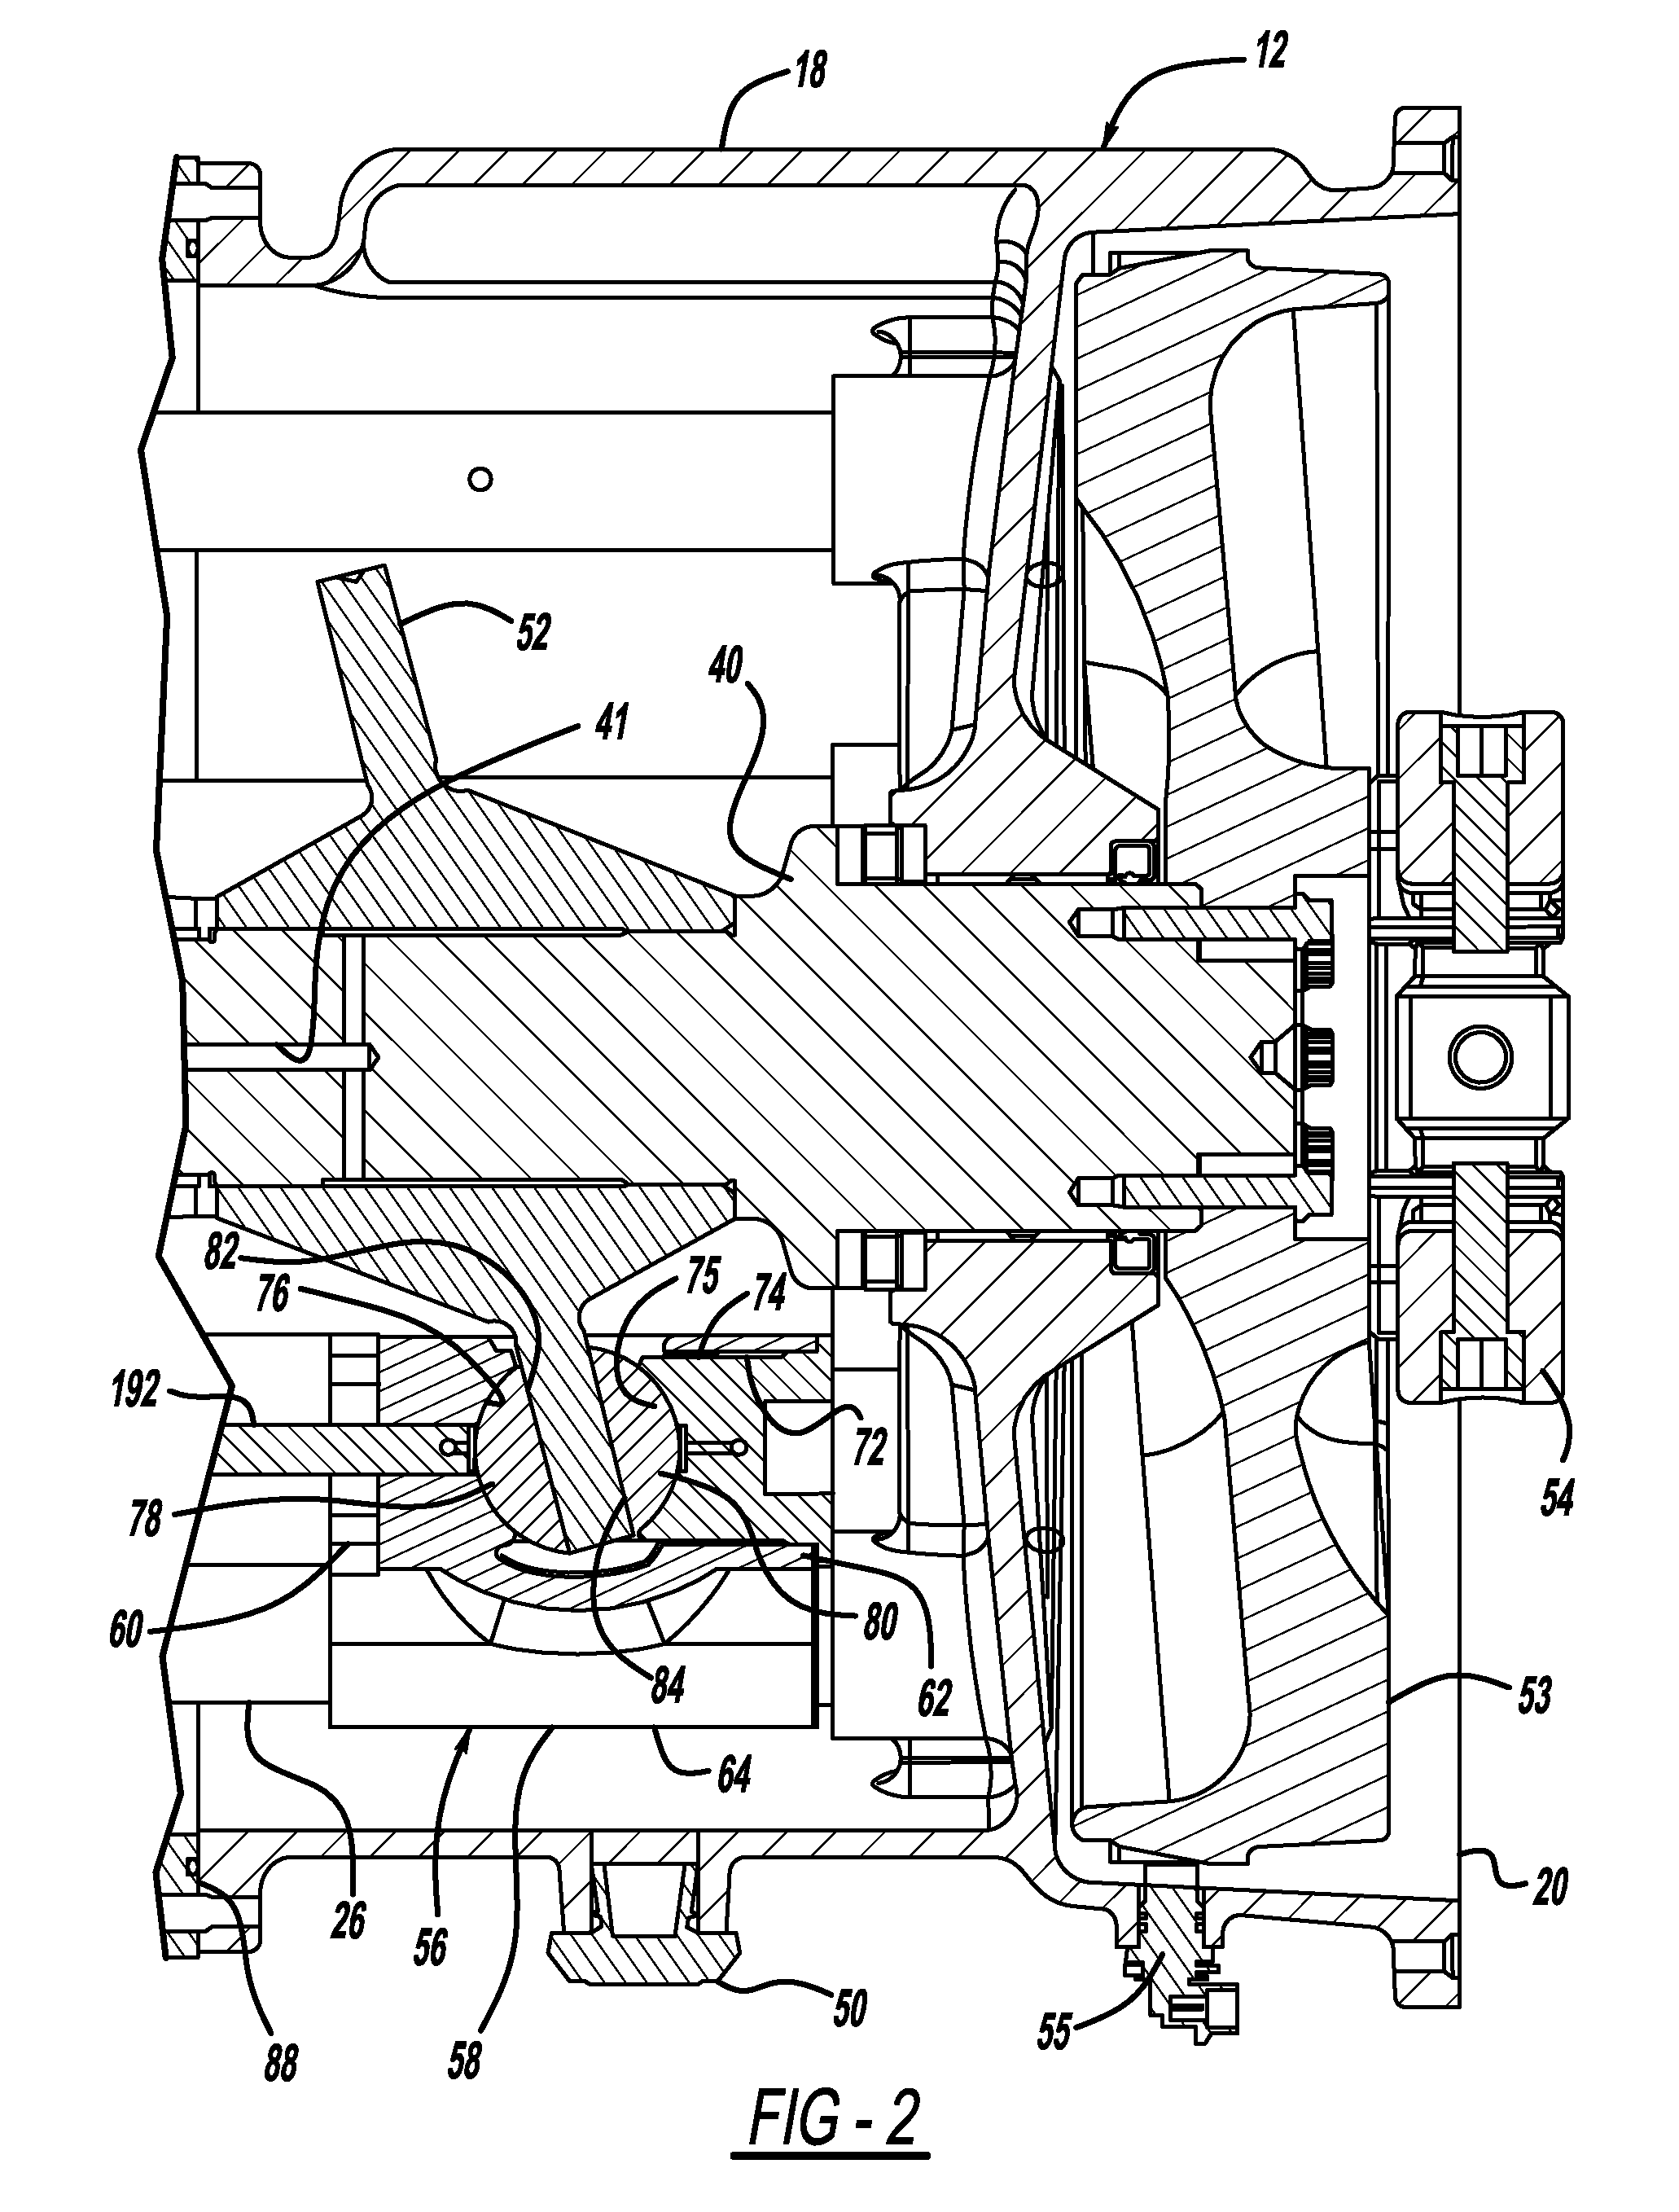 pressure equalization system for a stirling engine us 8601809 b2 patent drawing [ 2062 x 2716 Pixel ]